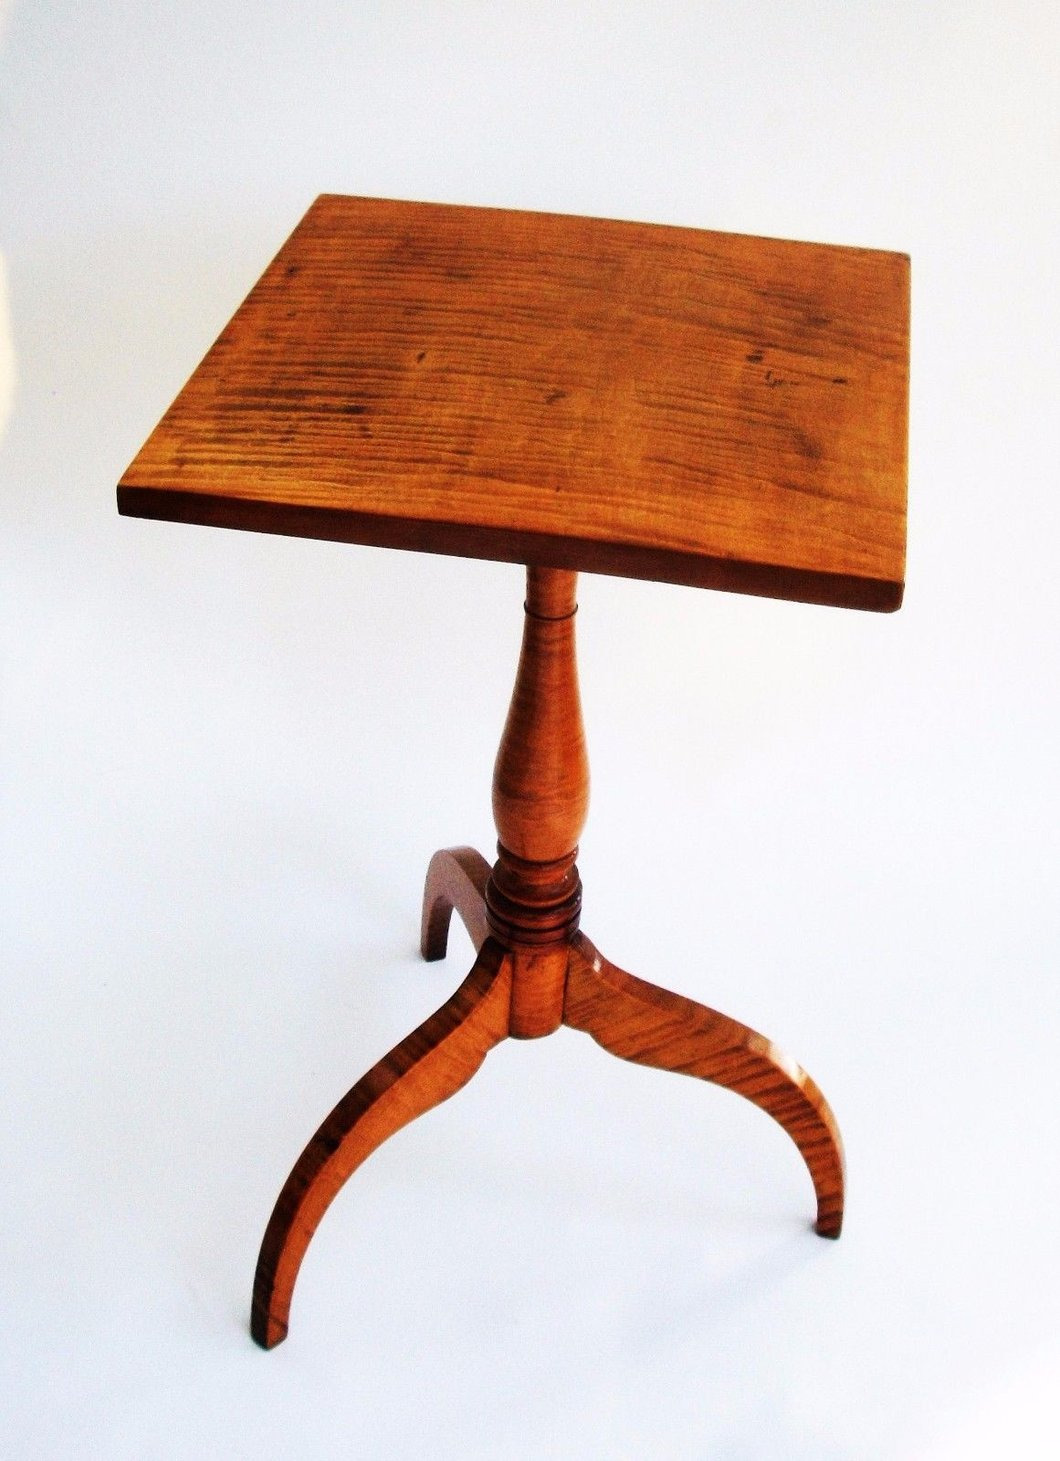 Antique Tiger Maple Furniture Luxury 1750 Tiger Maple Candle Stand Federal Furniture – Stahl Antiques